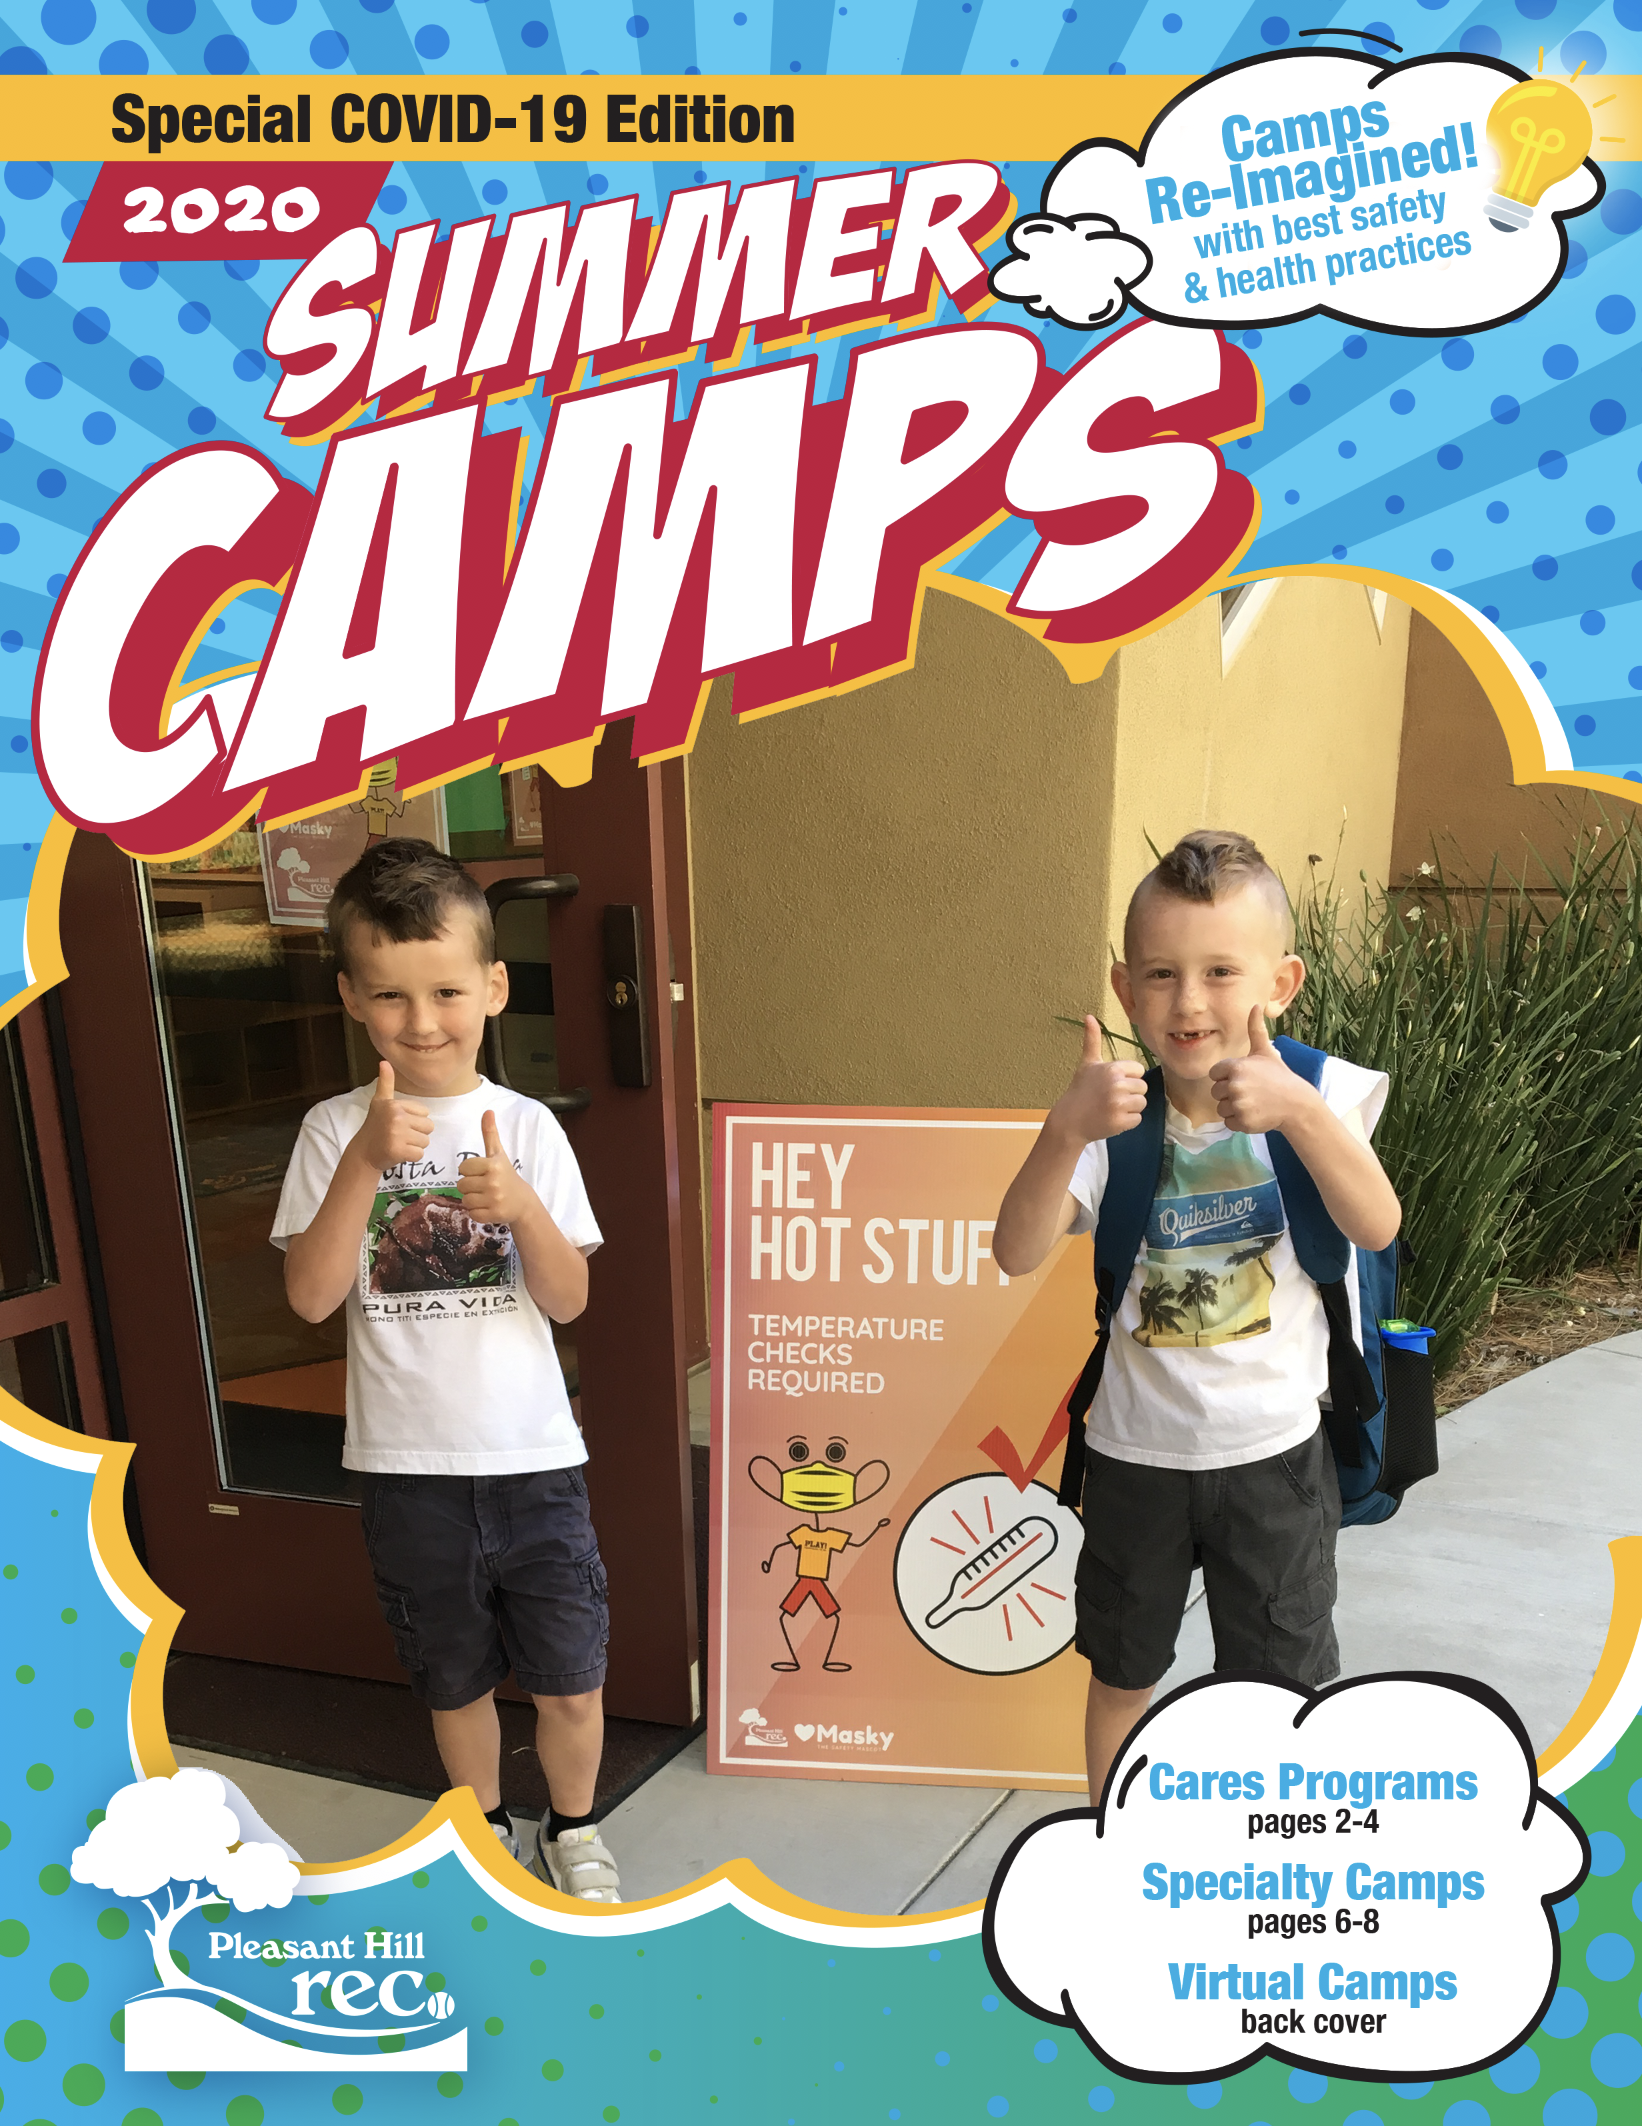 Summer Camp Guide Covid19 Edition